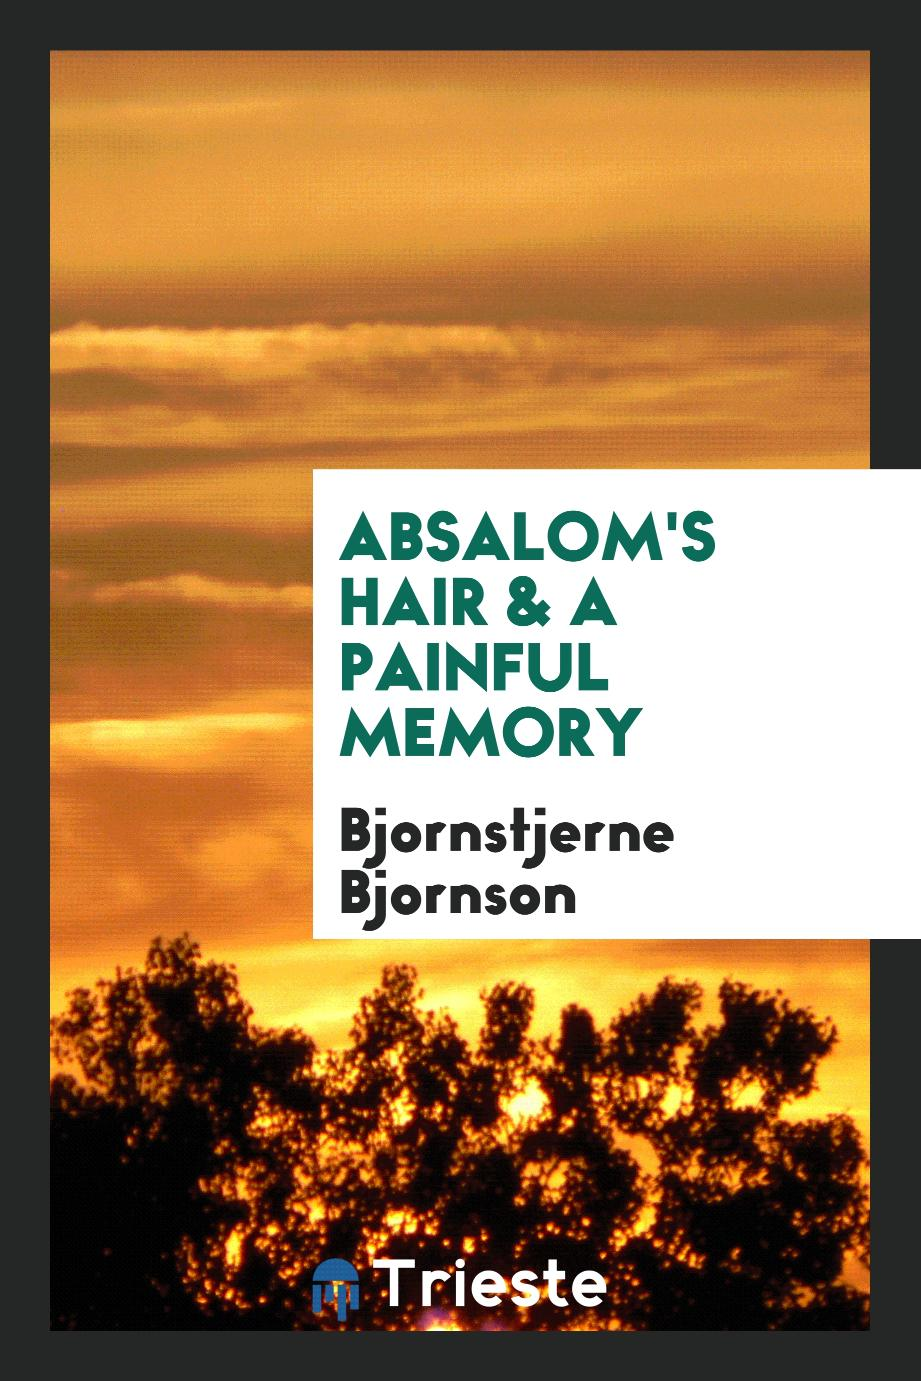 Absalom's hair & A painful memory